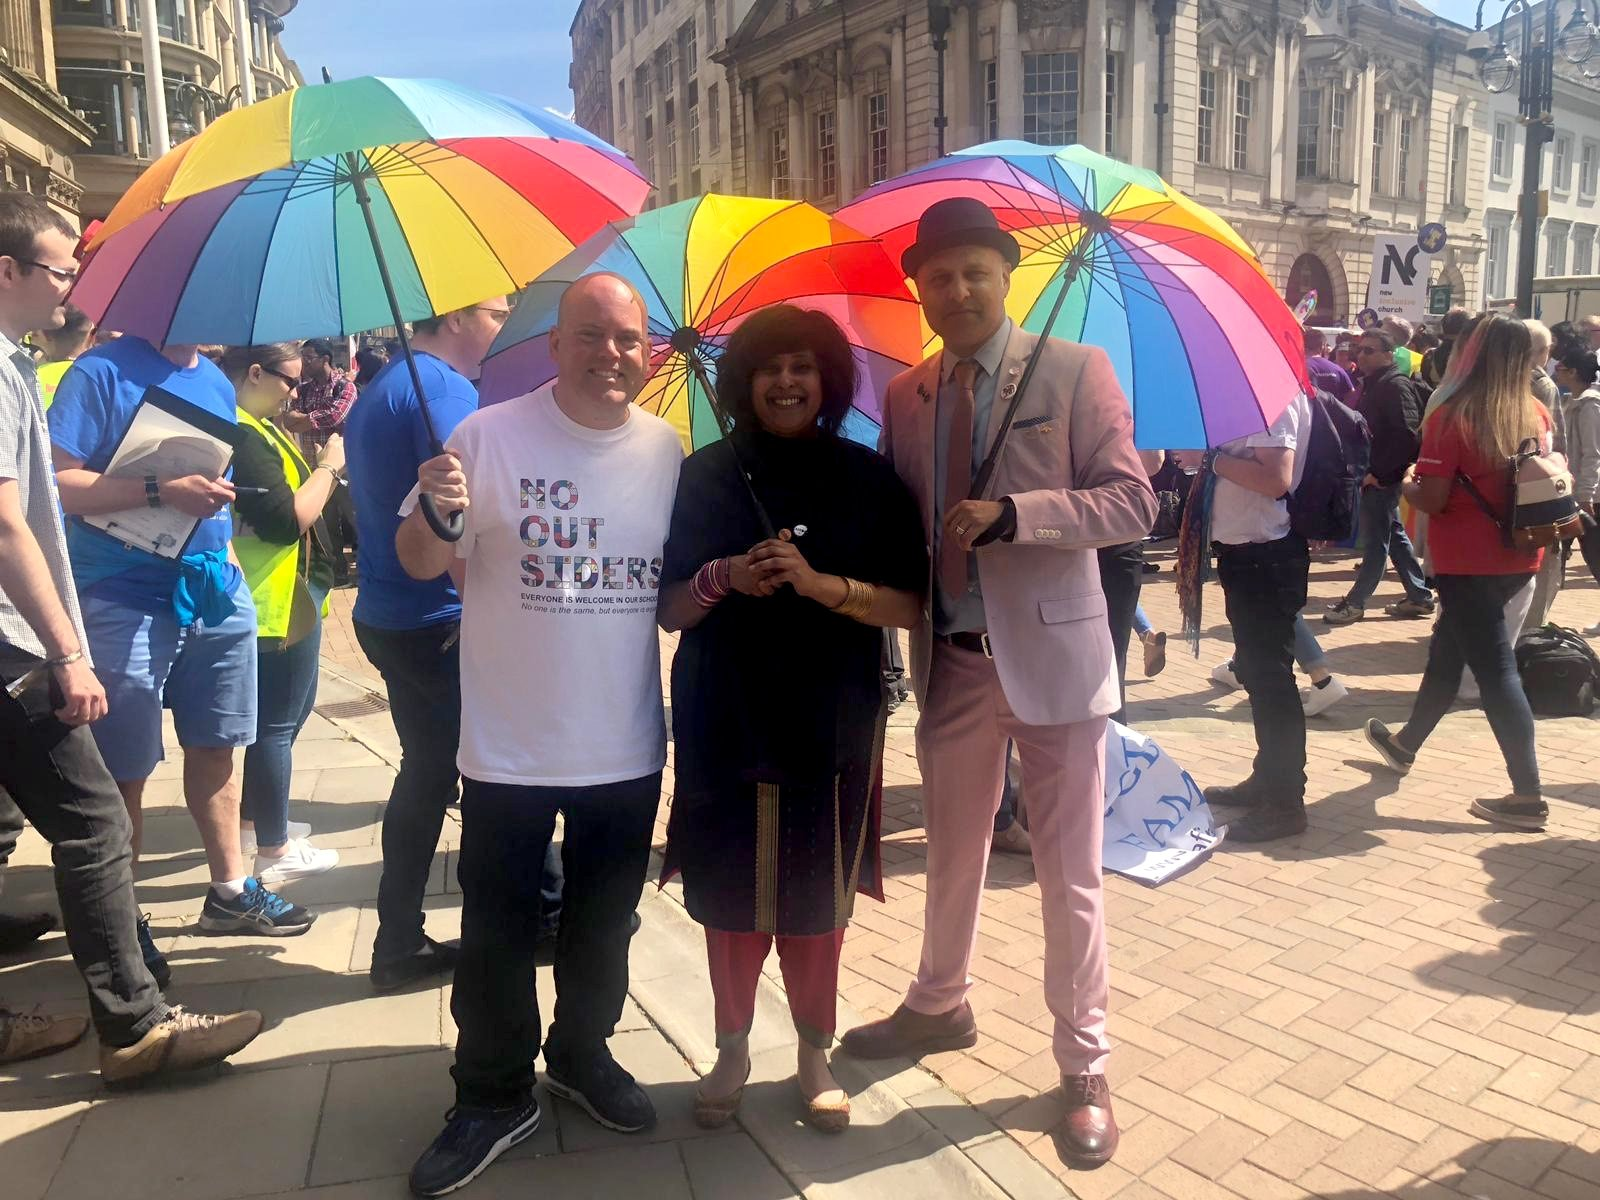 Crowds of LGBT Muslims to lead first ever pride march in history